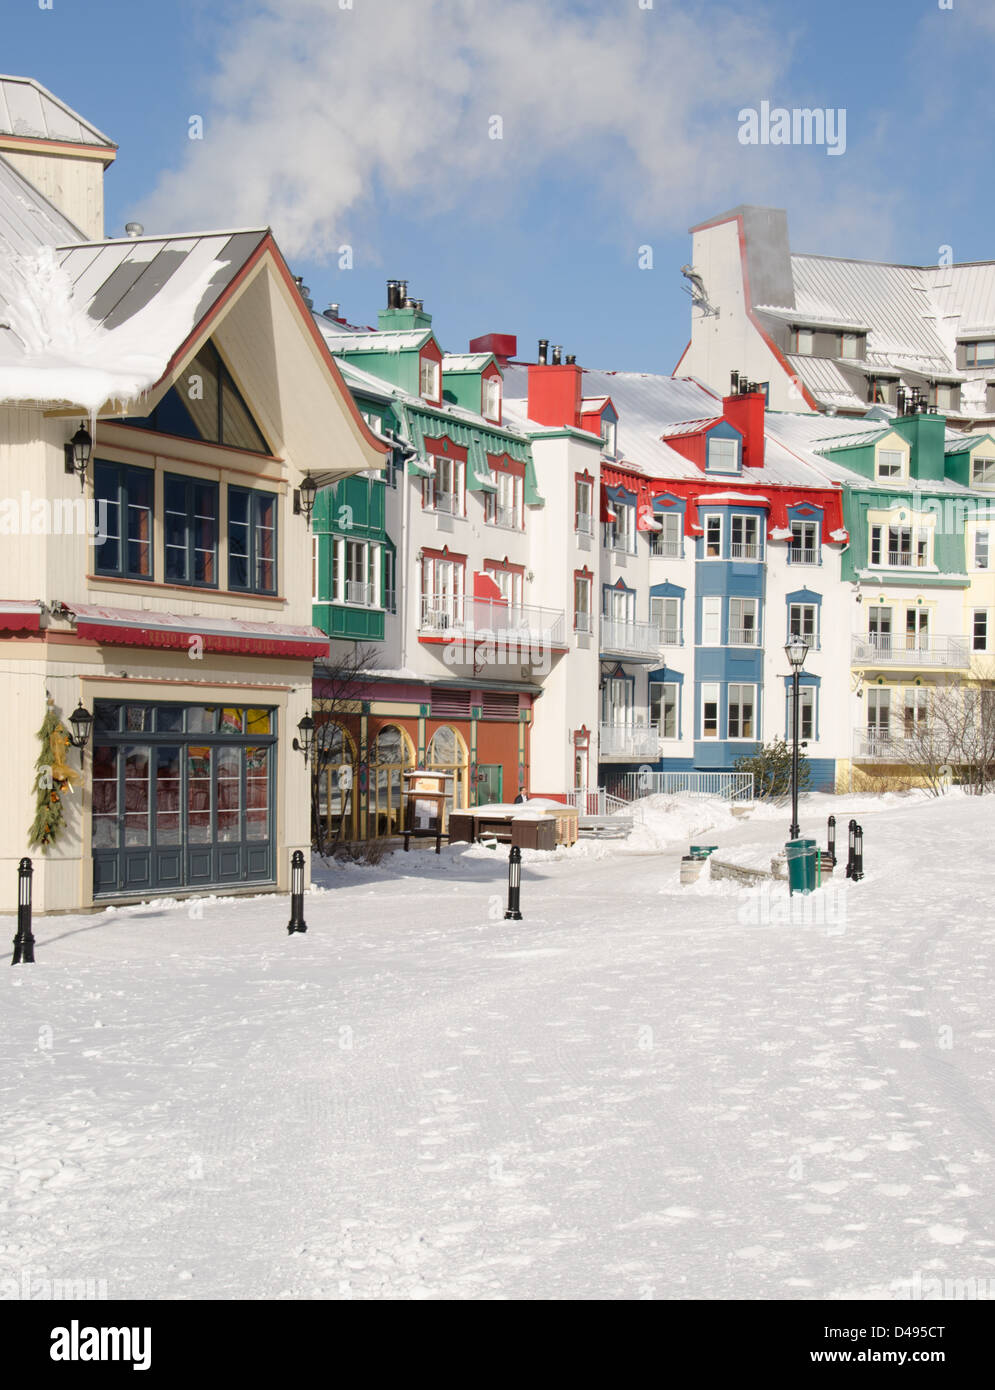 Snowy ski village in Mont Tremblant in Quebec, Canada - Stock Image